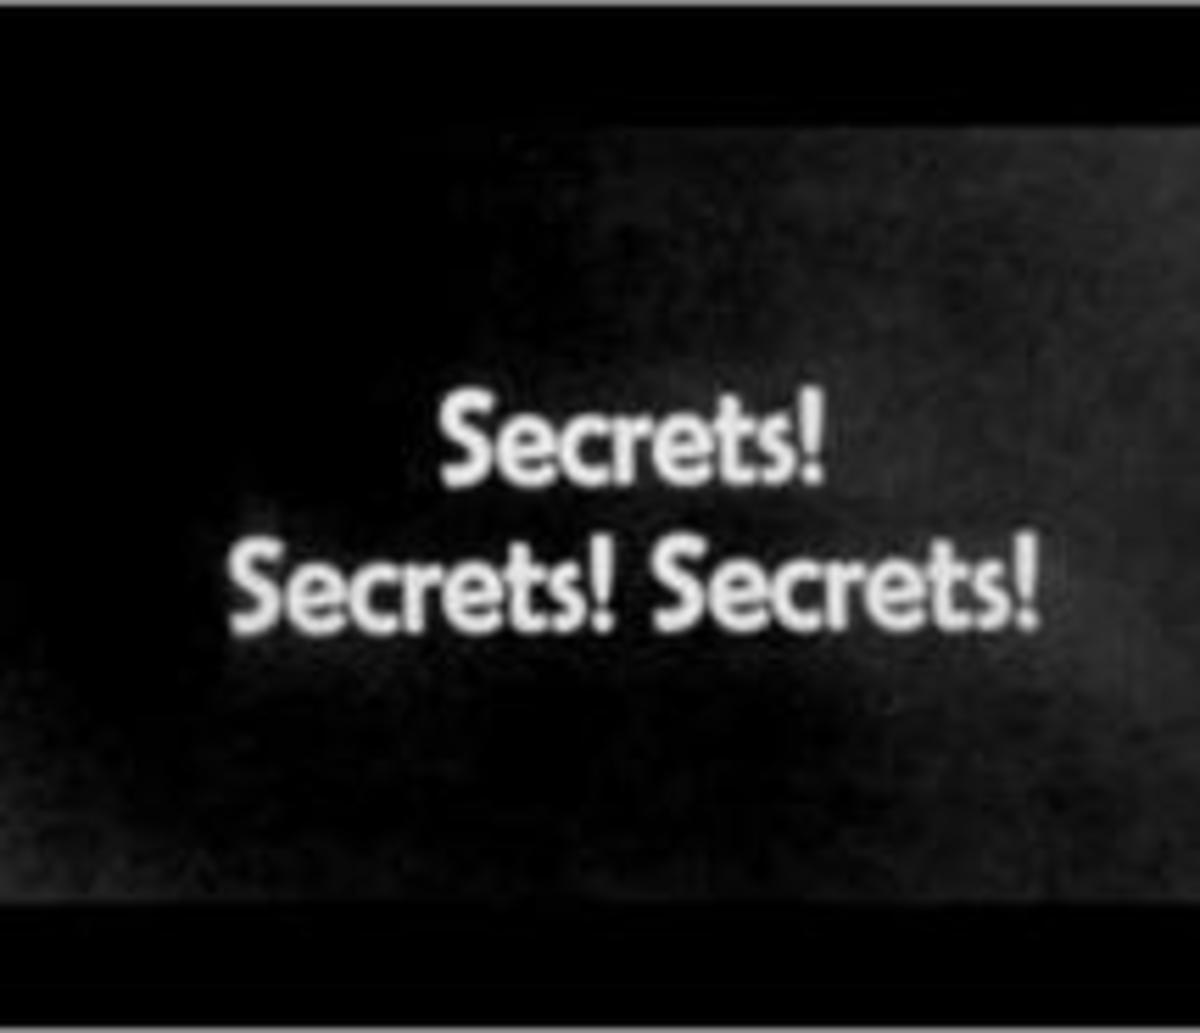 secrets-written-in-the-past-for-the-future